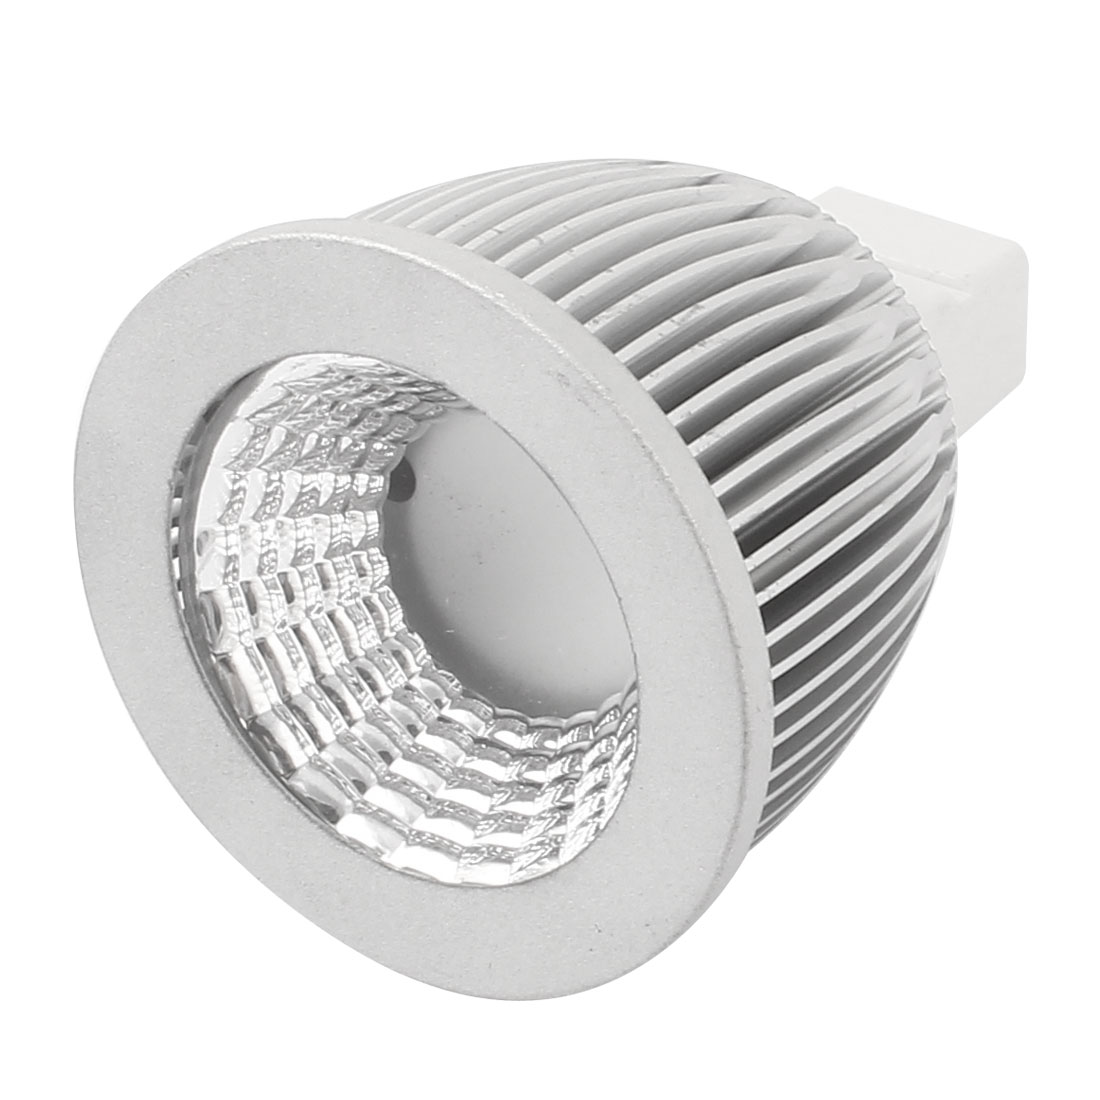 5W MR16 Socket 50mm Dia Cover Single Bulb Lamp Shell LED Aluminum Heatsink